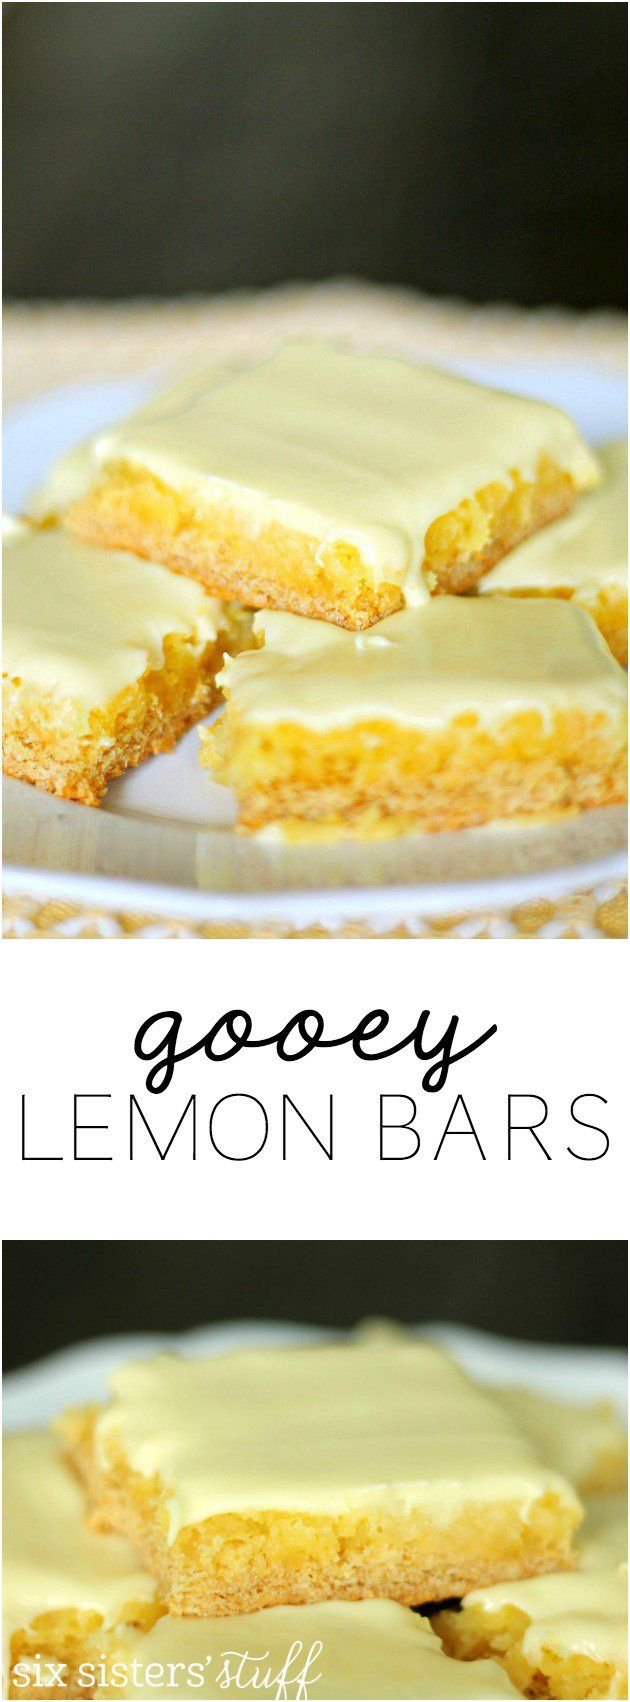 Gooey Lemon Bars from SixSistersStuff.com. These are made with a cake mix and are hands-down the best lemon bars I've EVER had!